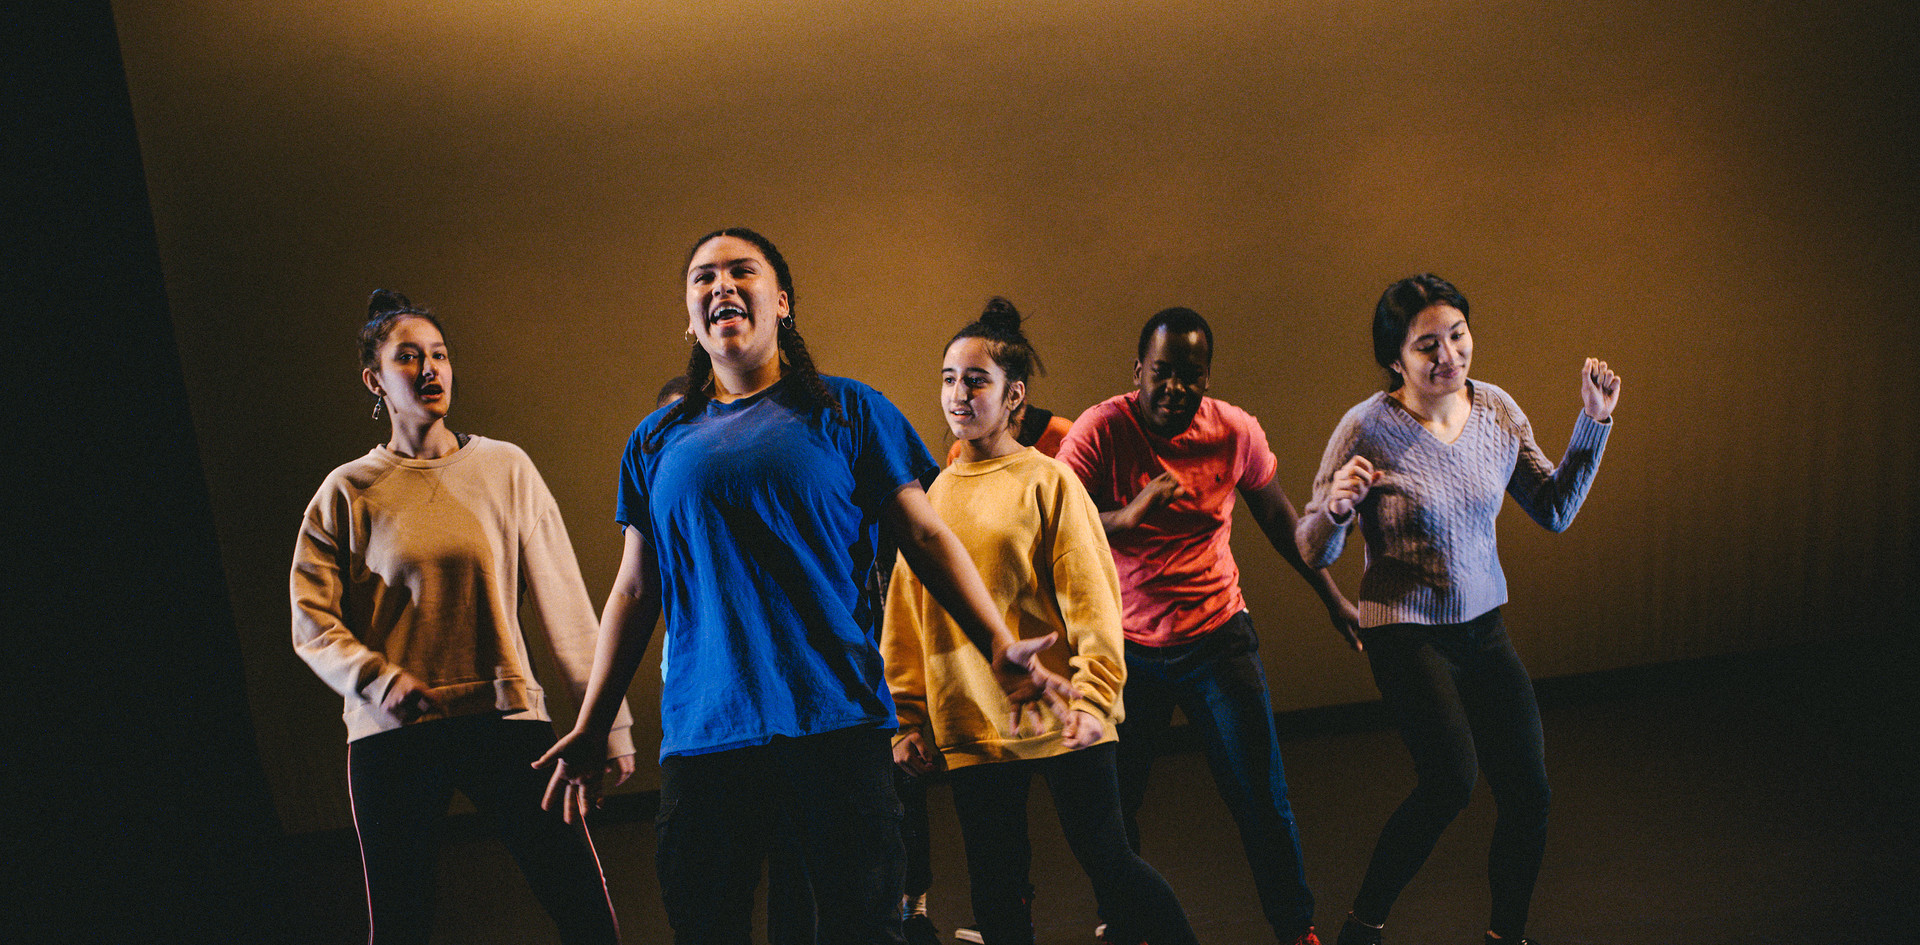 Beyond Face Youth Company